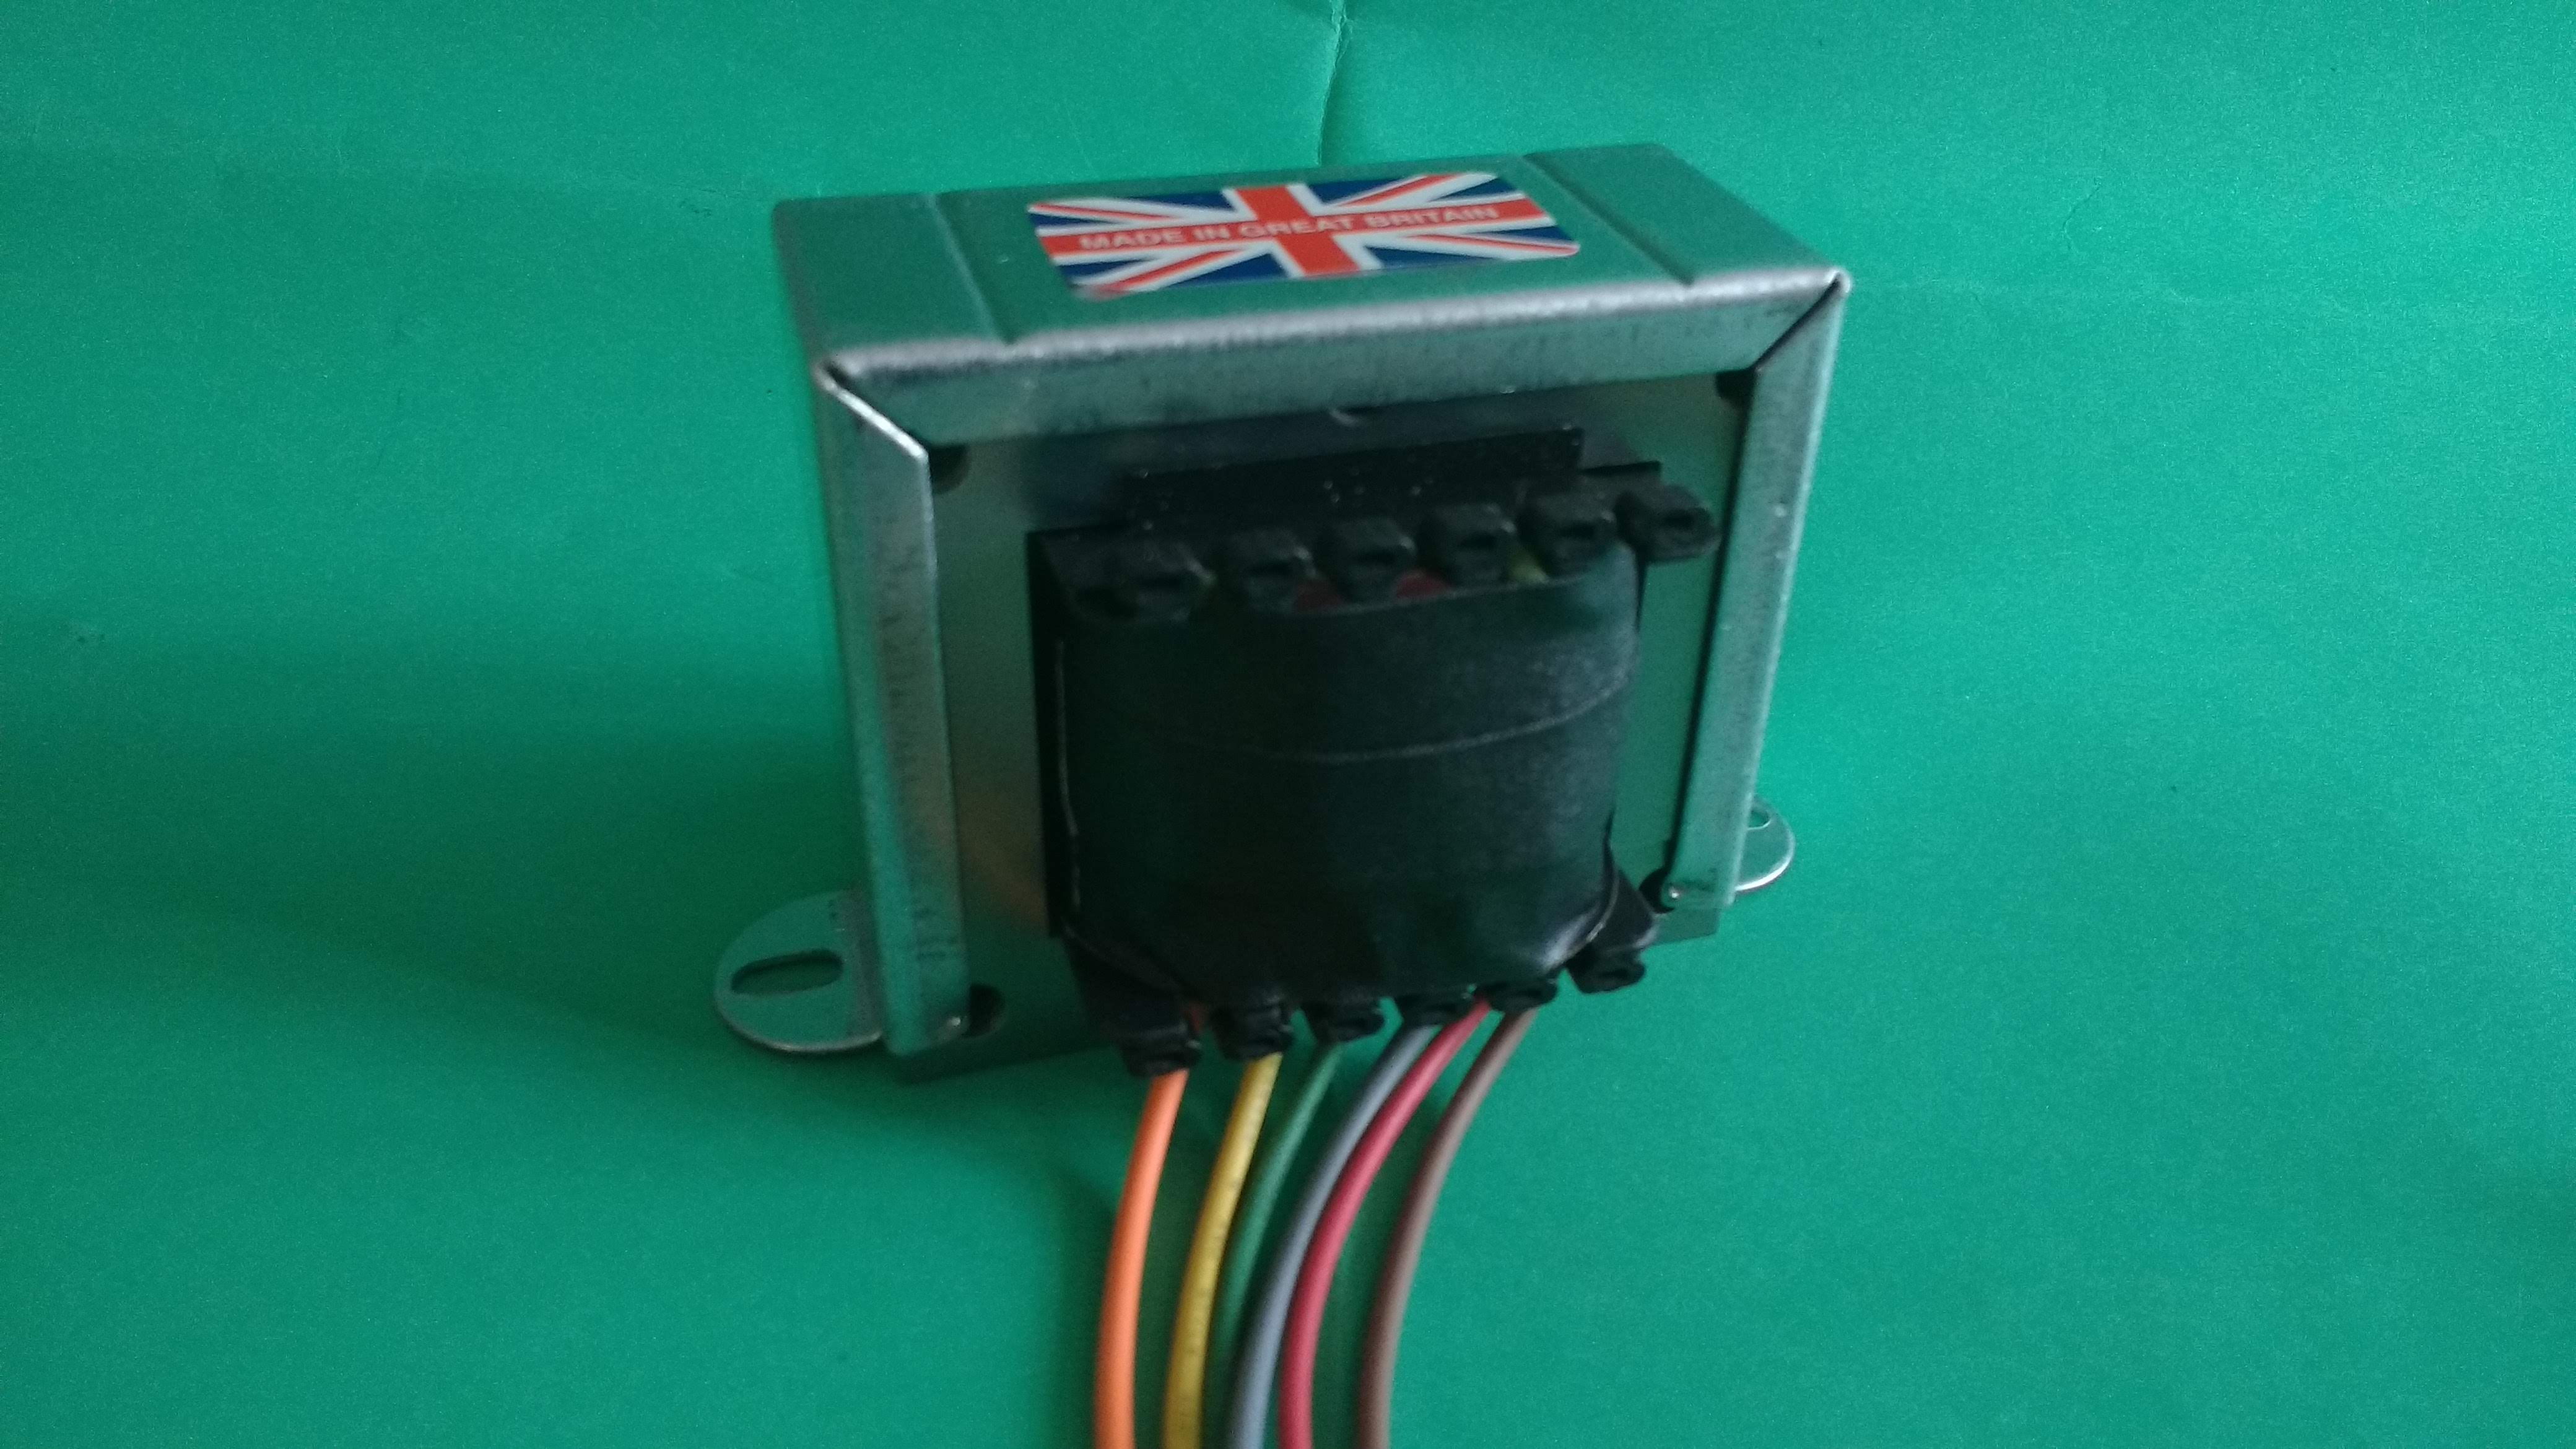 Transformers Open Circuit And Short Circuit Tests Full Video